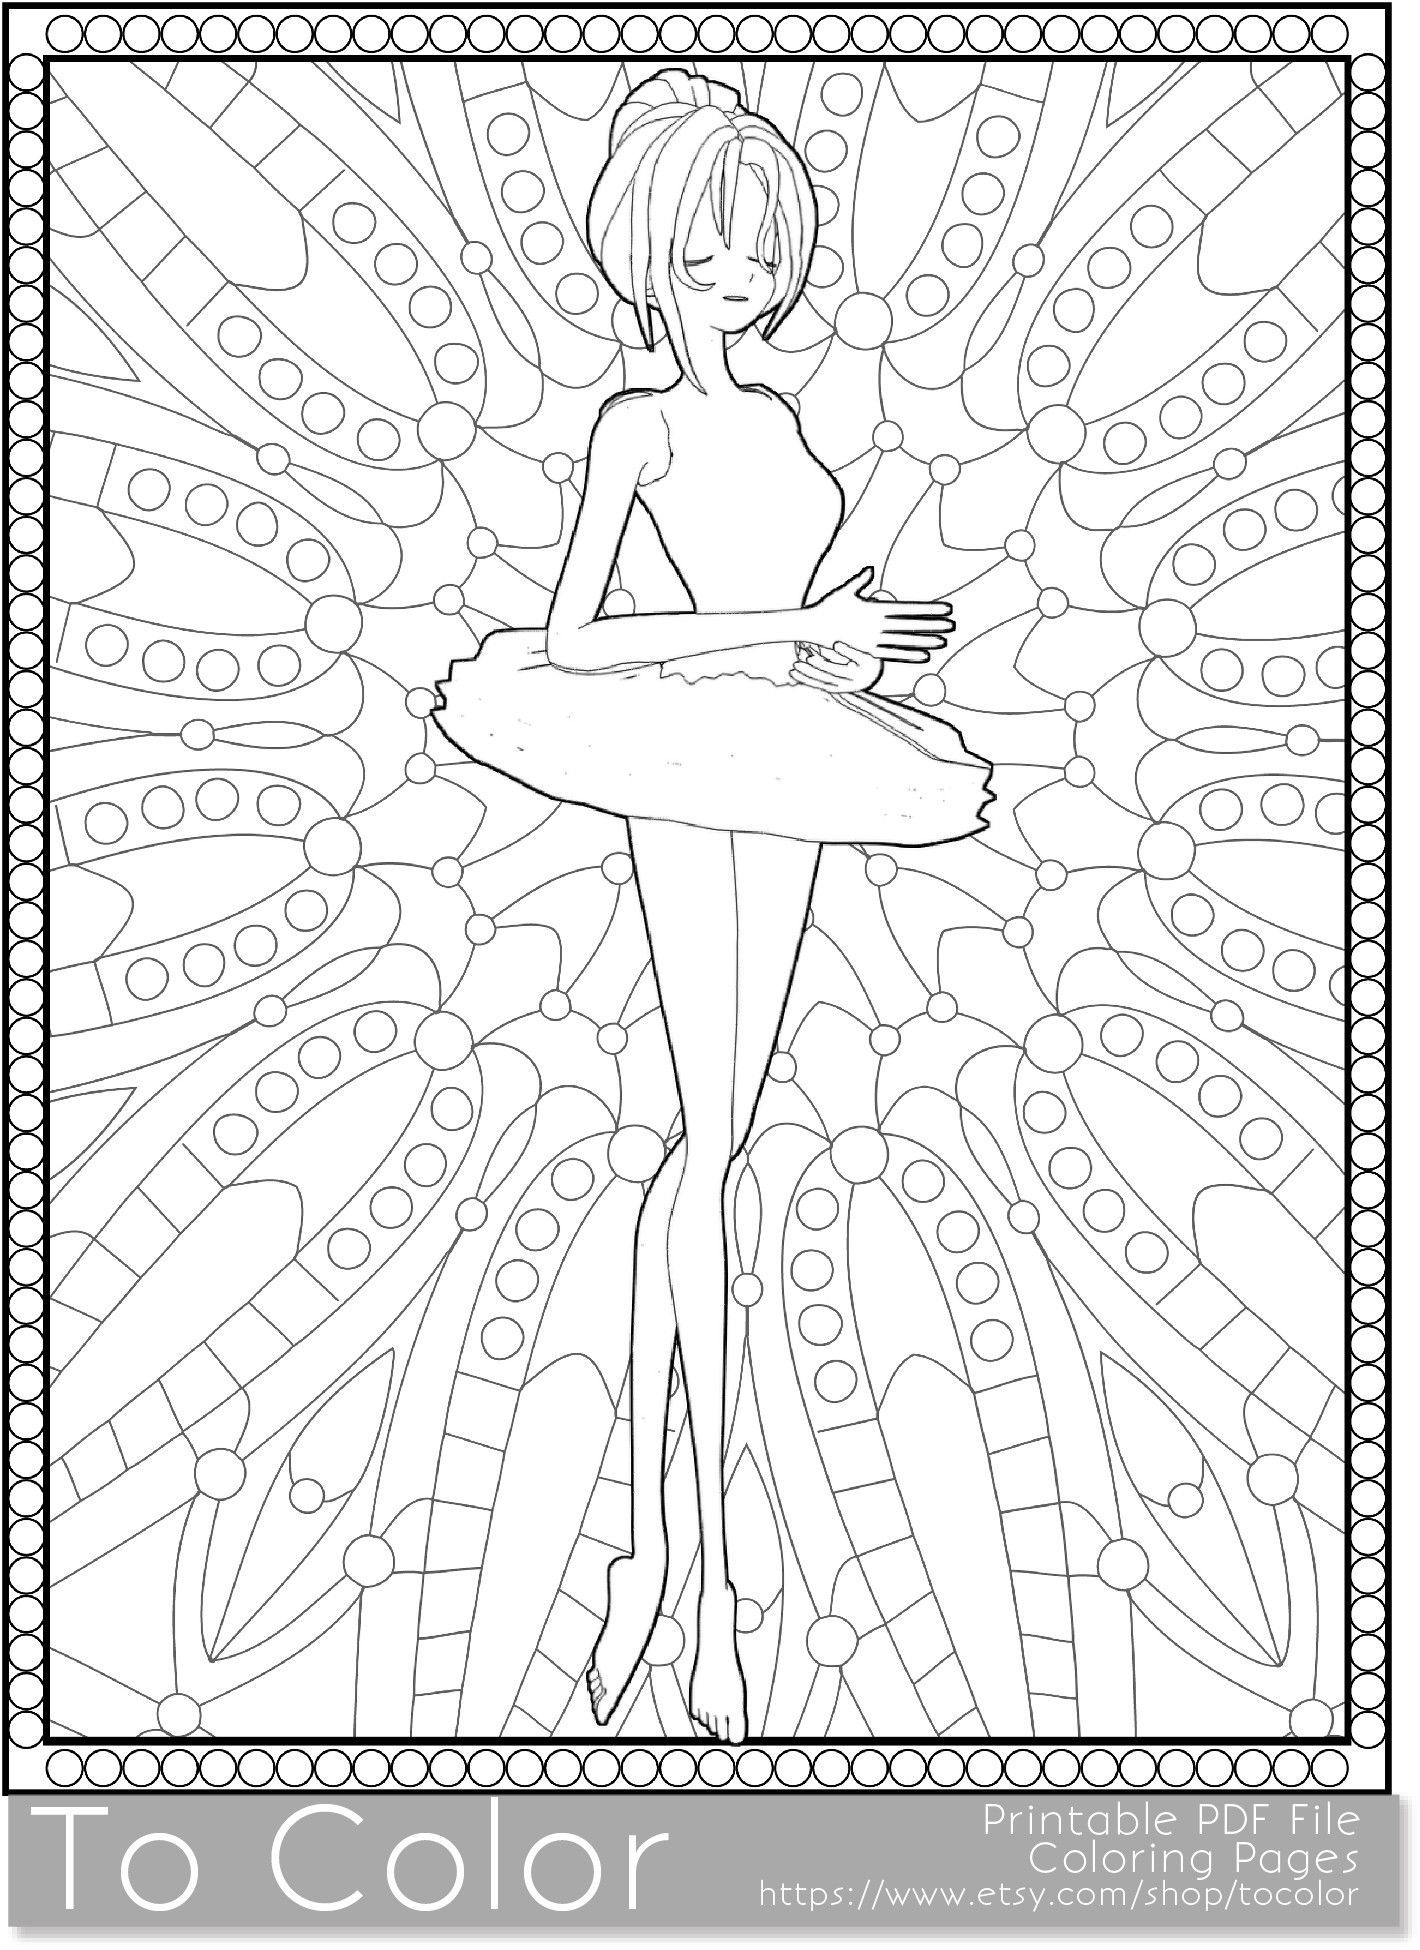 Ballet dancer and patterned background coloring page for instant